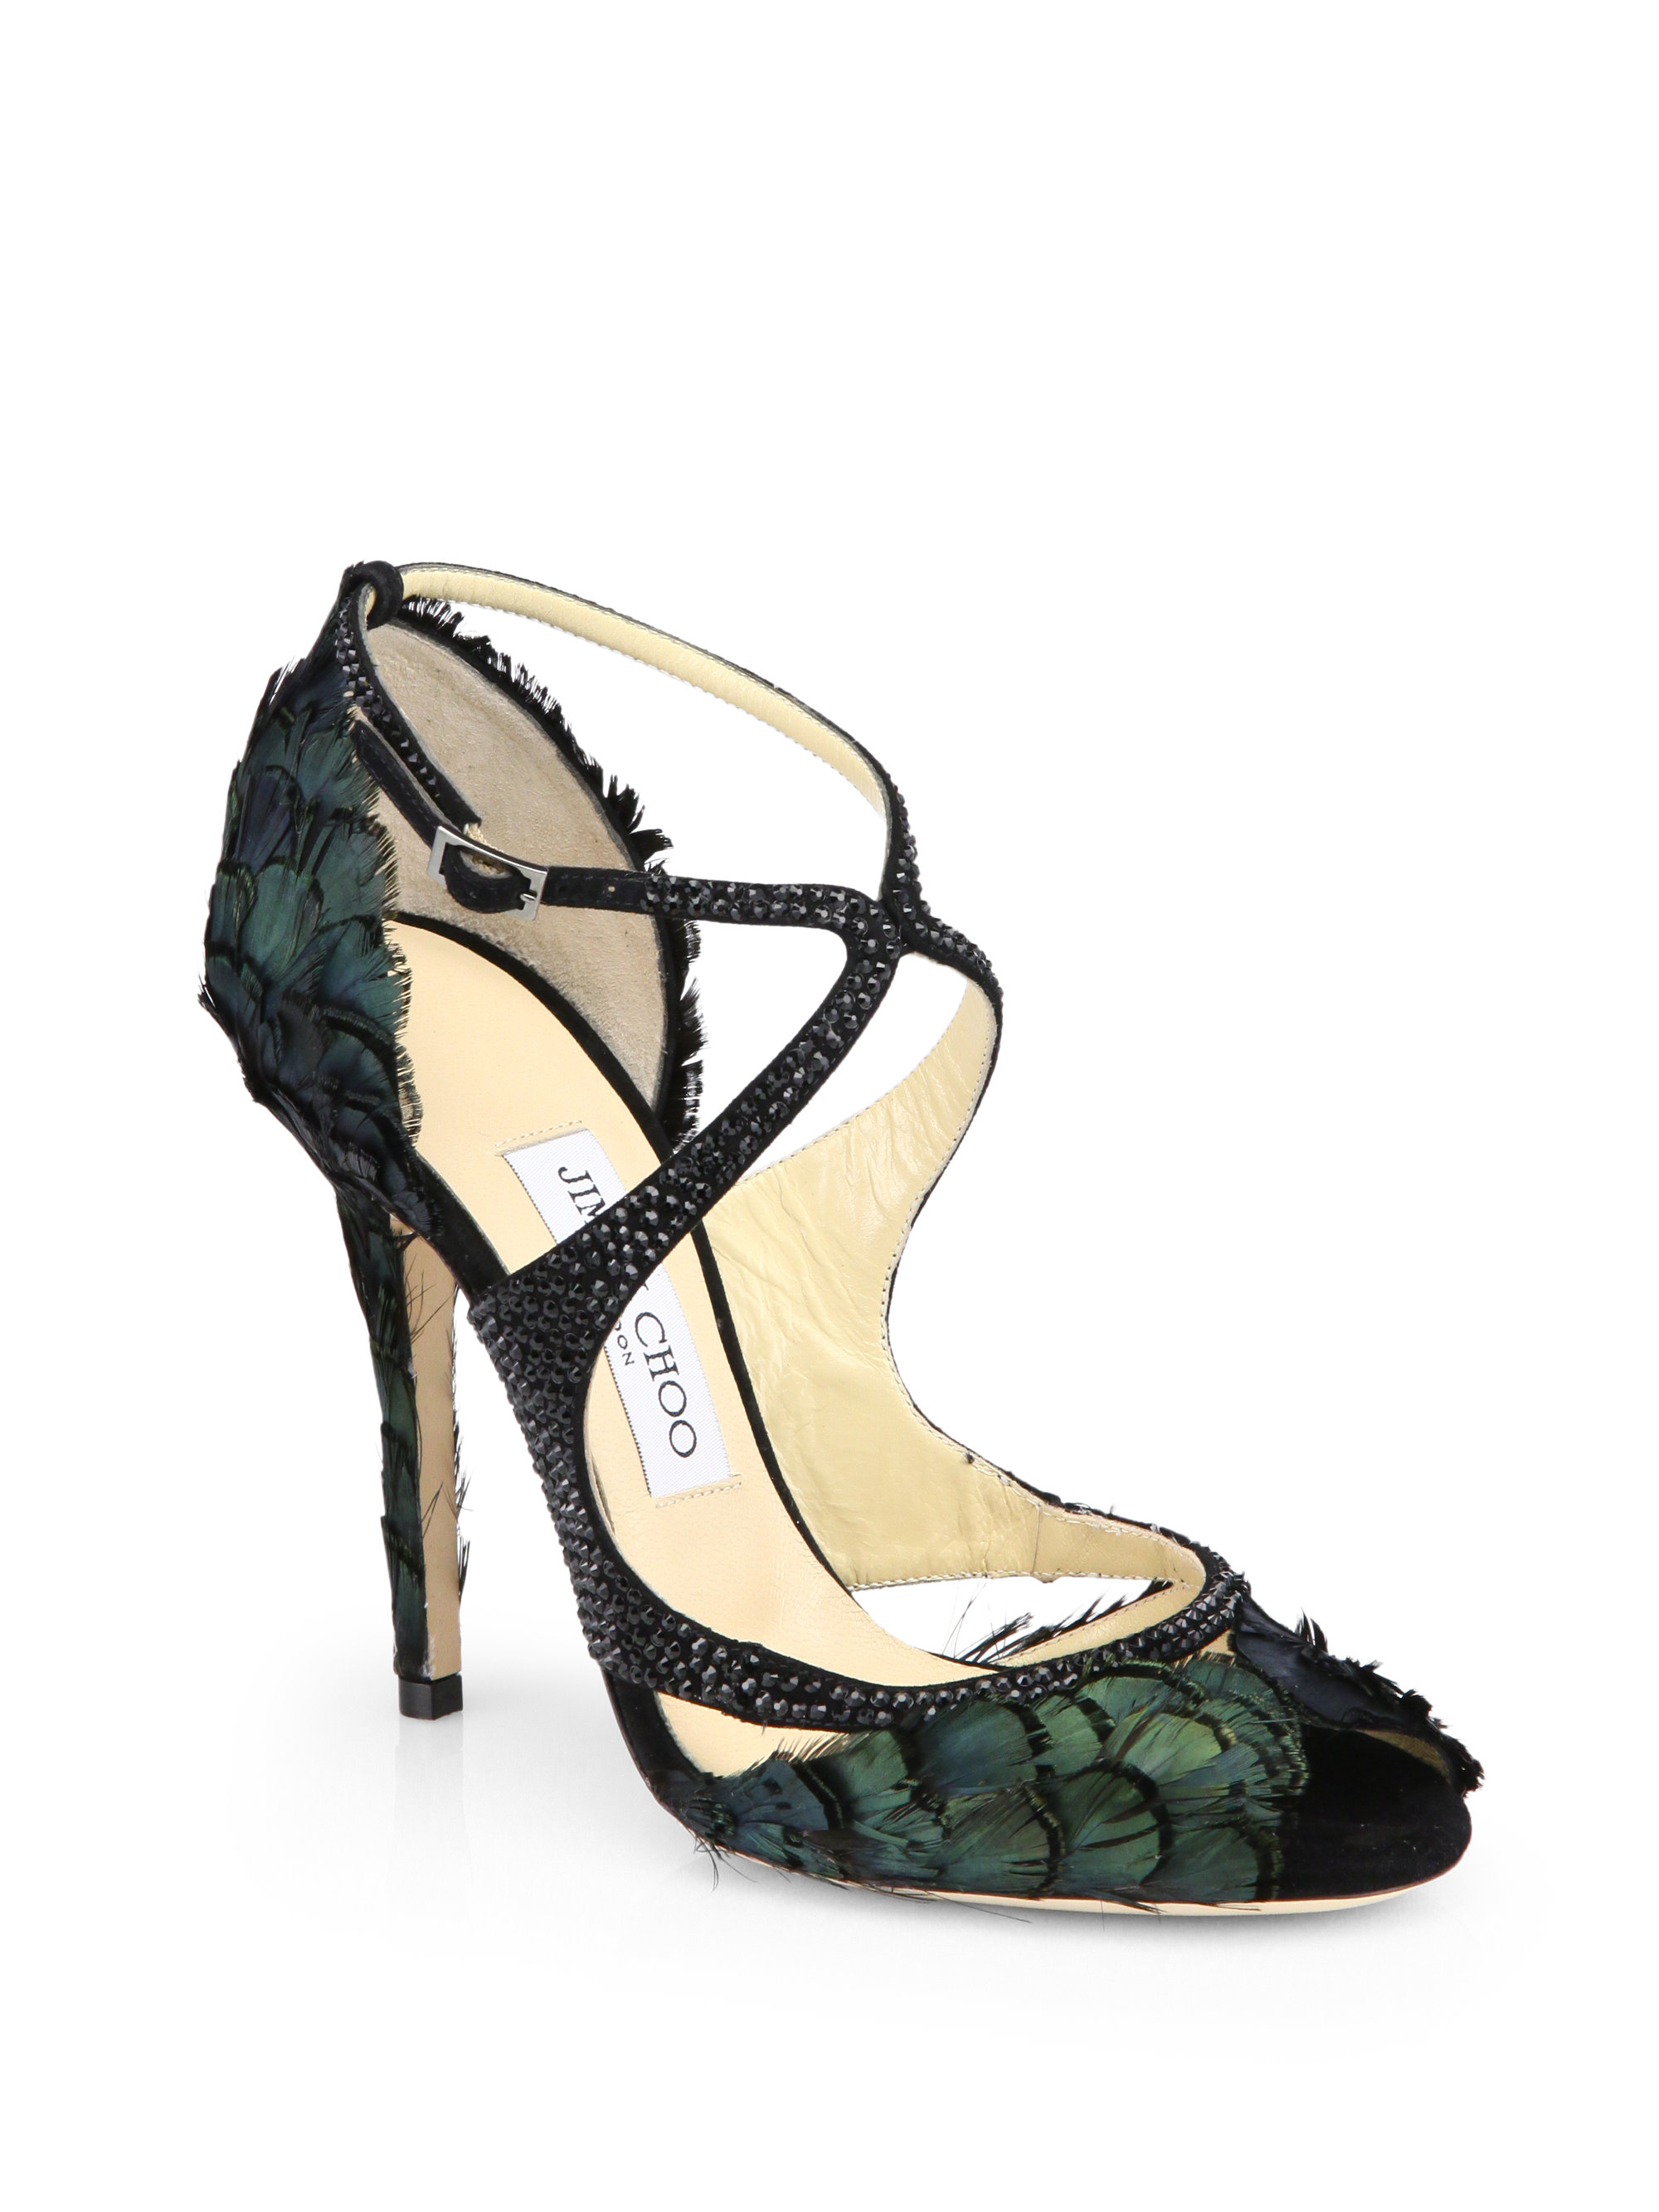 c057985cba37 ... coupon code for lyst jimmy choo kamelia shimmer feather sandals in  green 36eb5 46c25